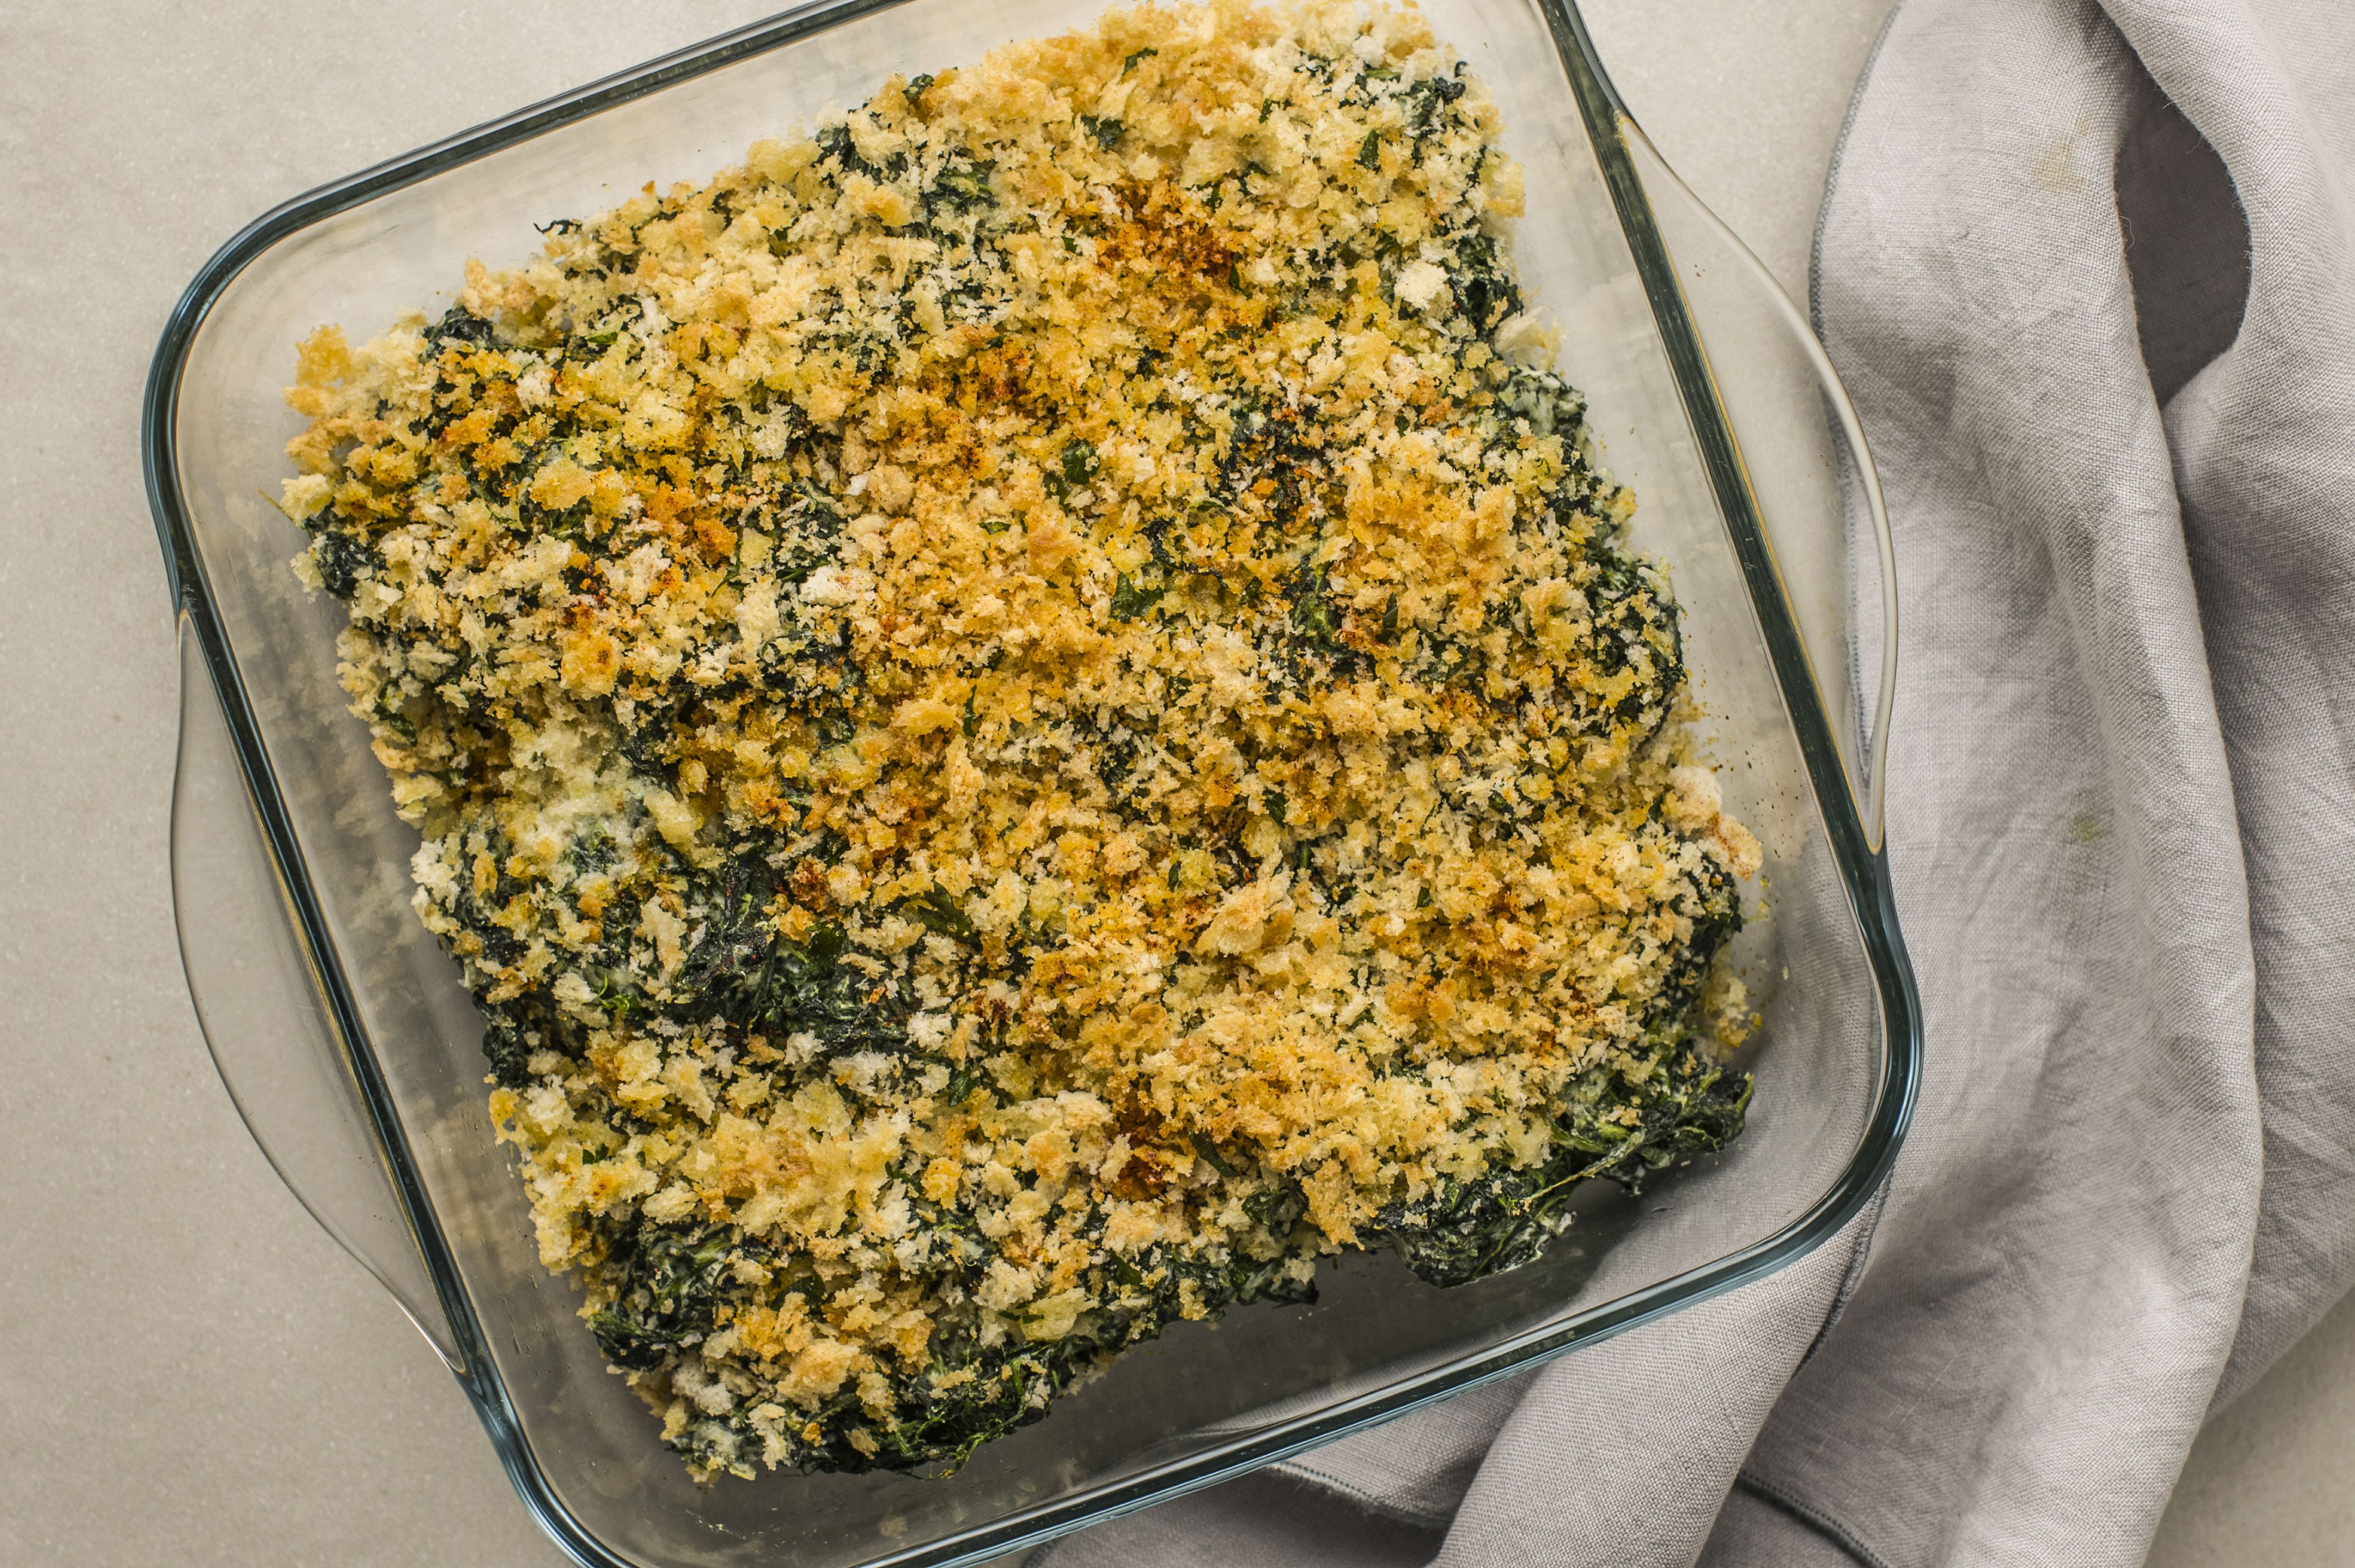 Bake the casserole in preheated oven